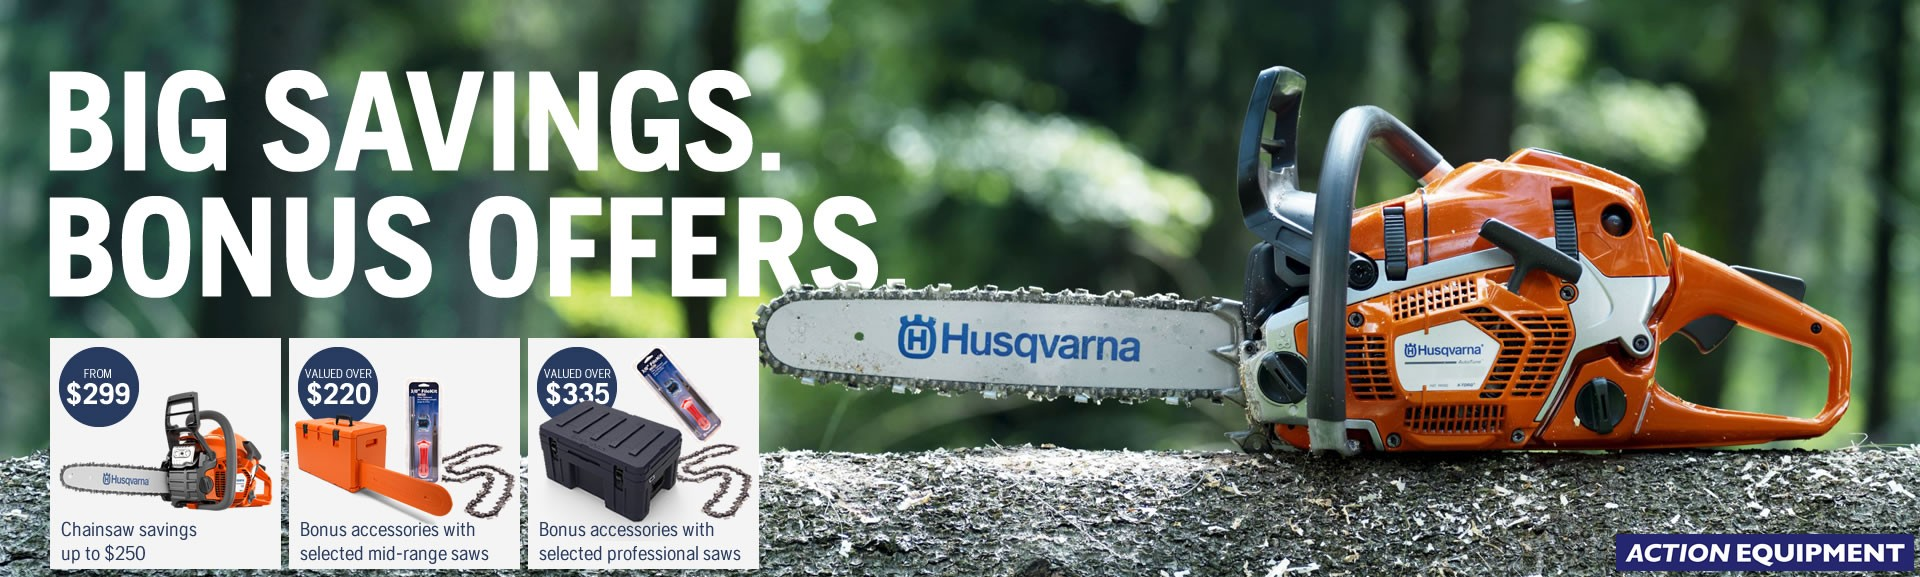 Husqvarna chainsaw offers